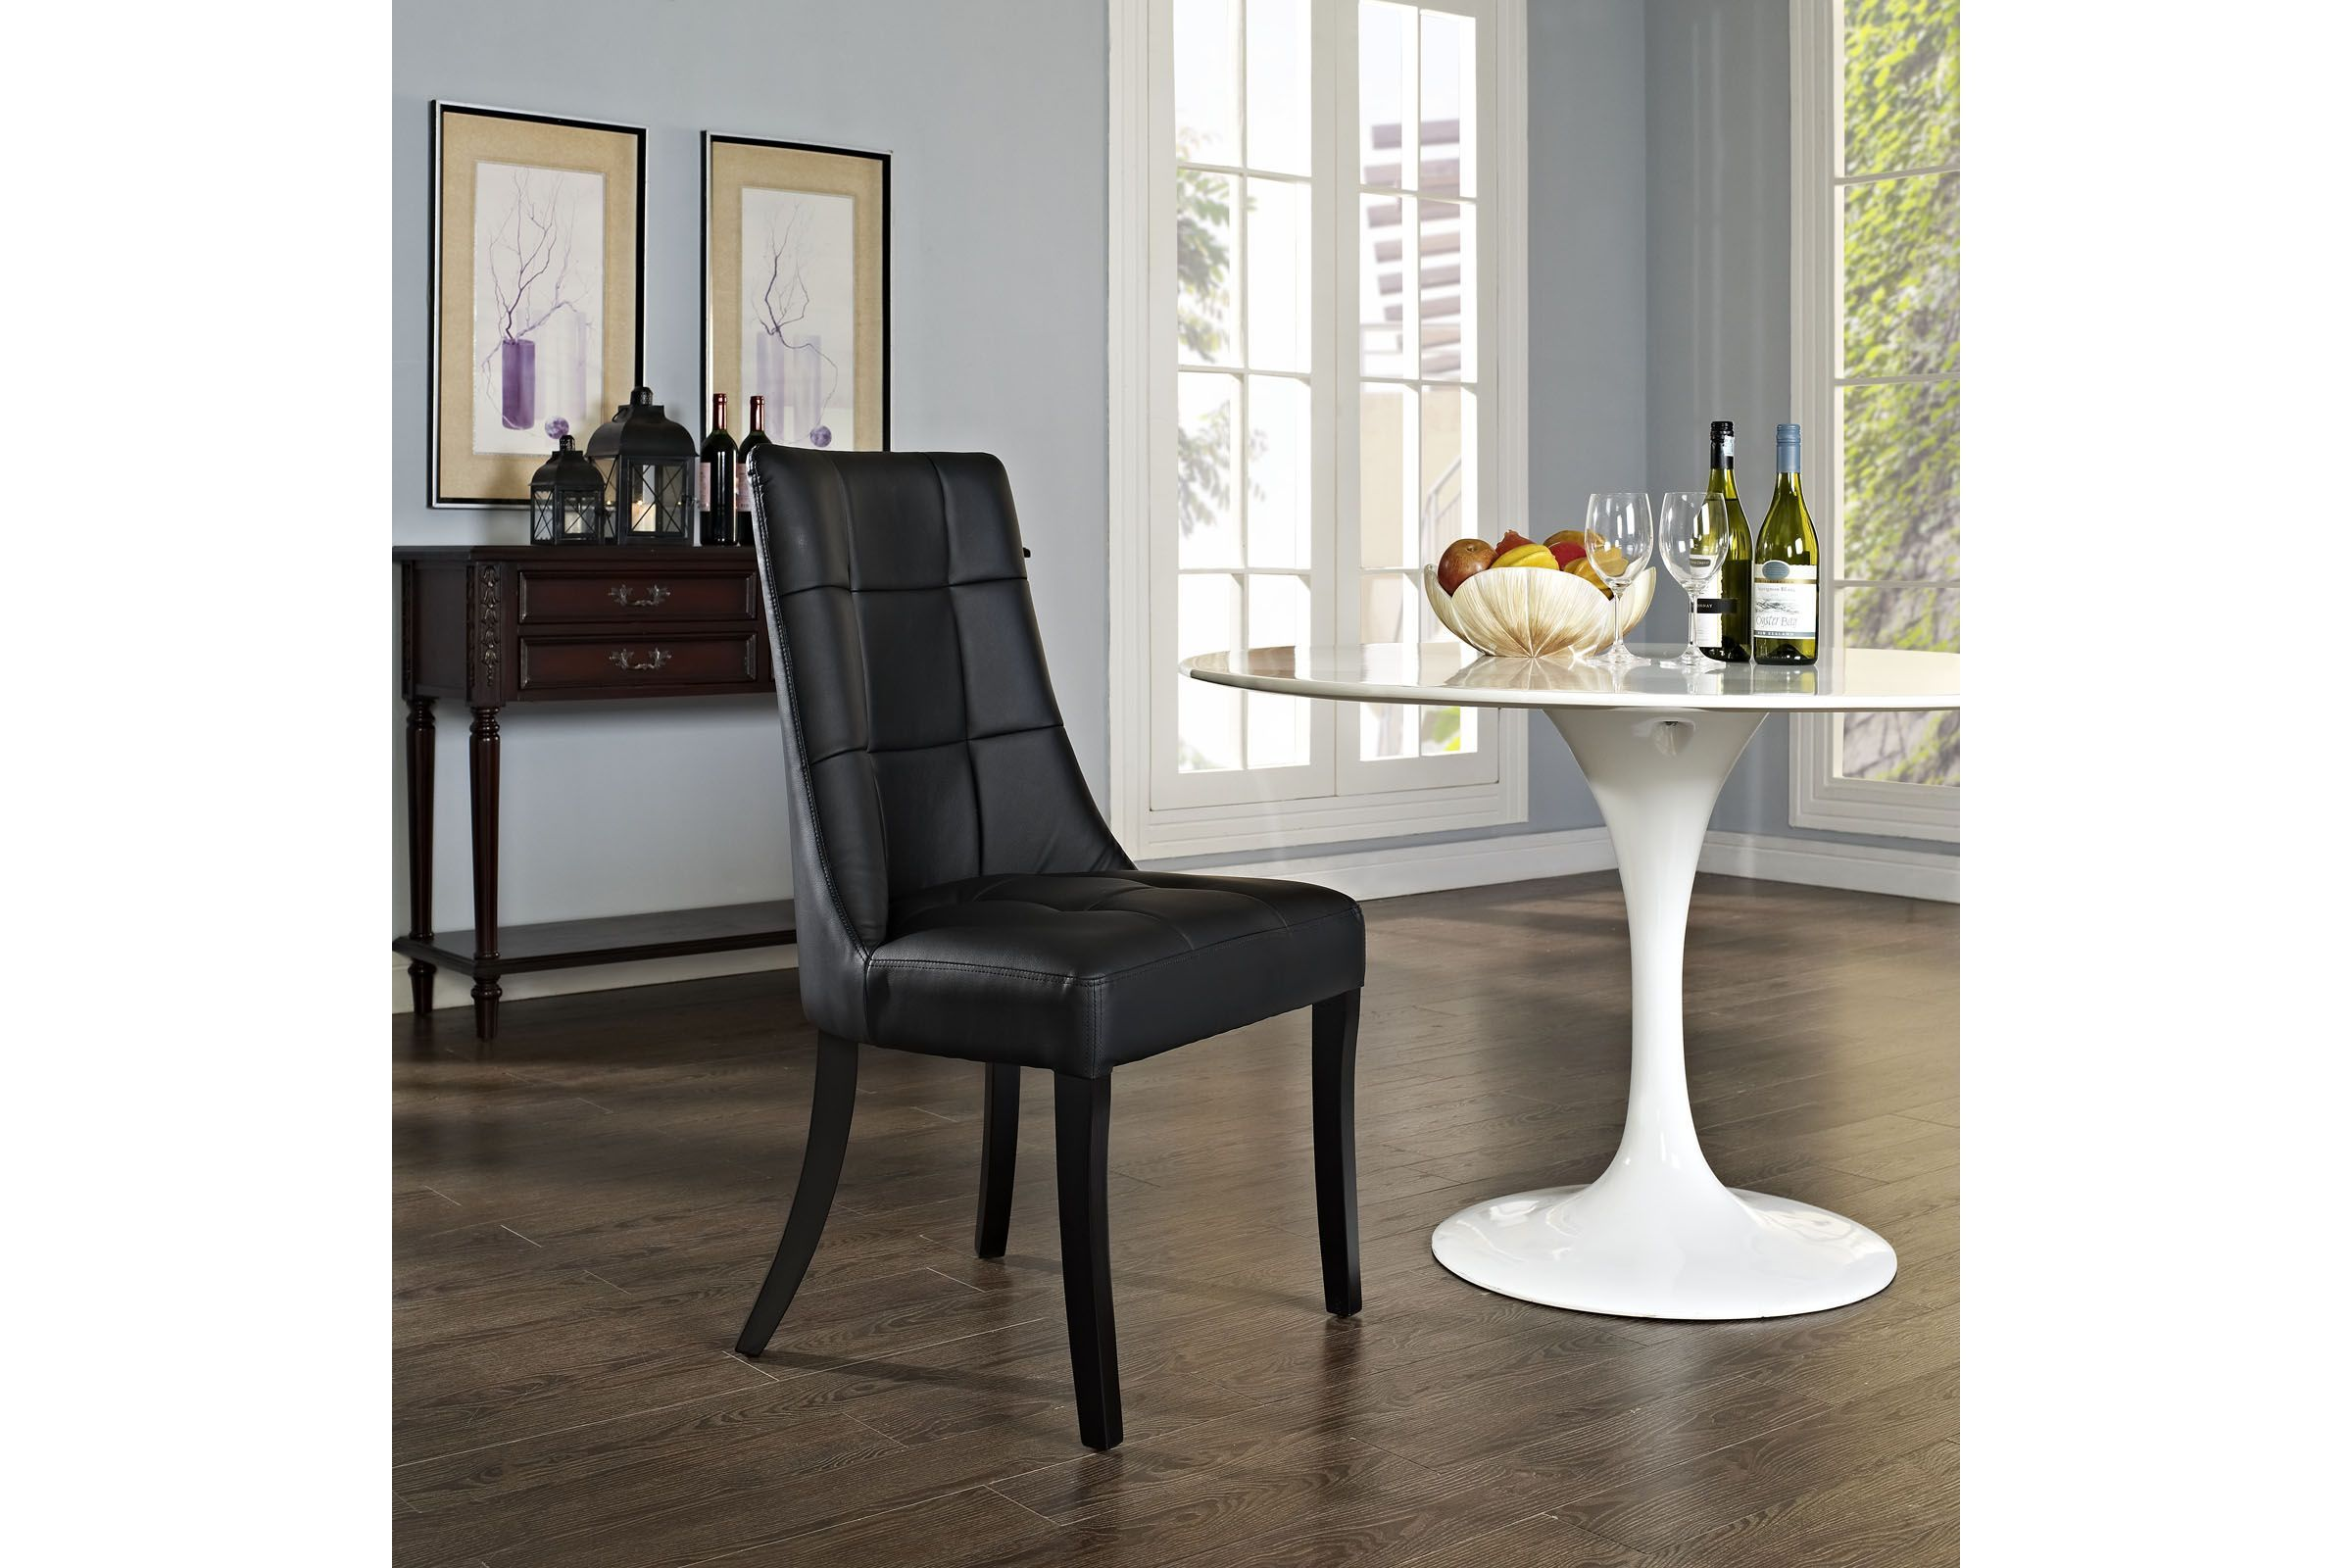 Noblesse Dining Vinyl Side Chair In Black By Modway In 2020